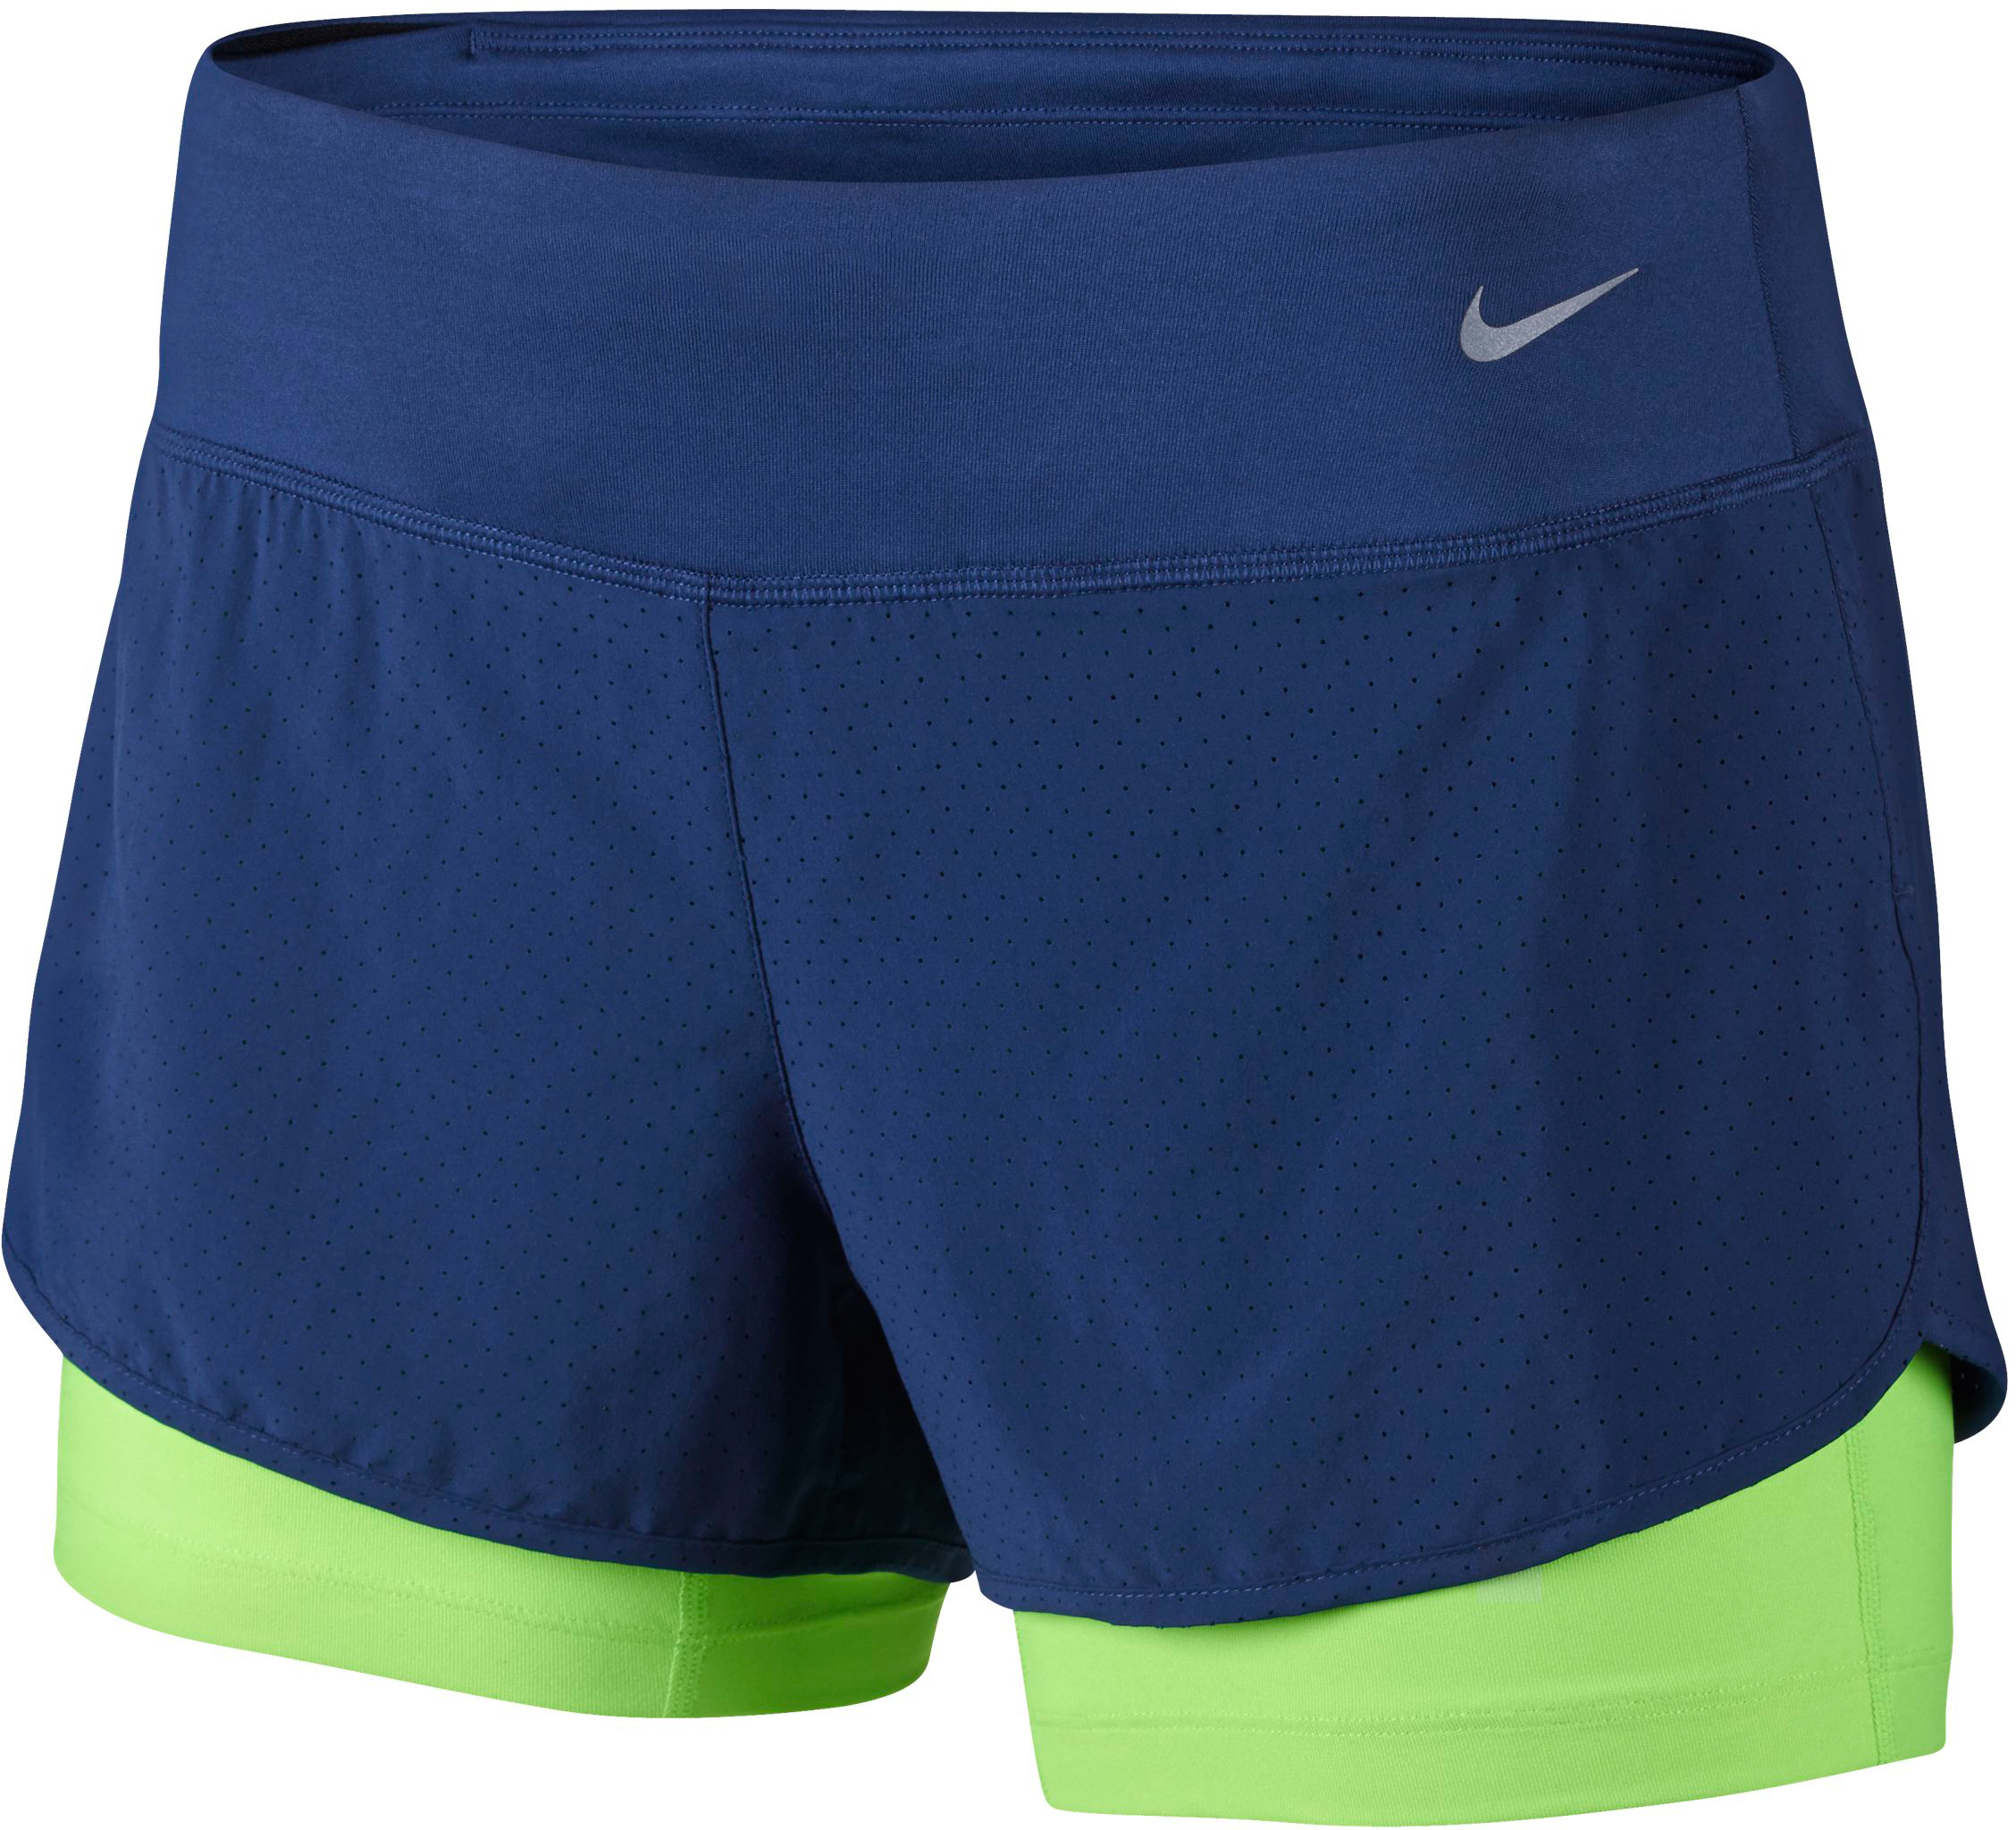 Wiggle Nederland   Nike Perforated Rival 2 in 1 korte